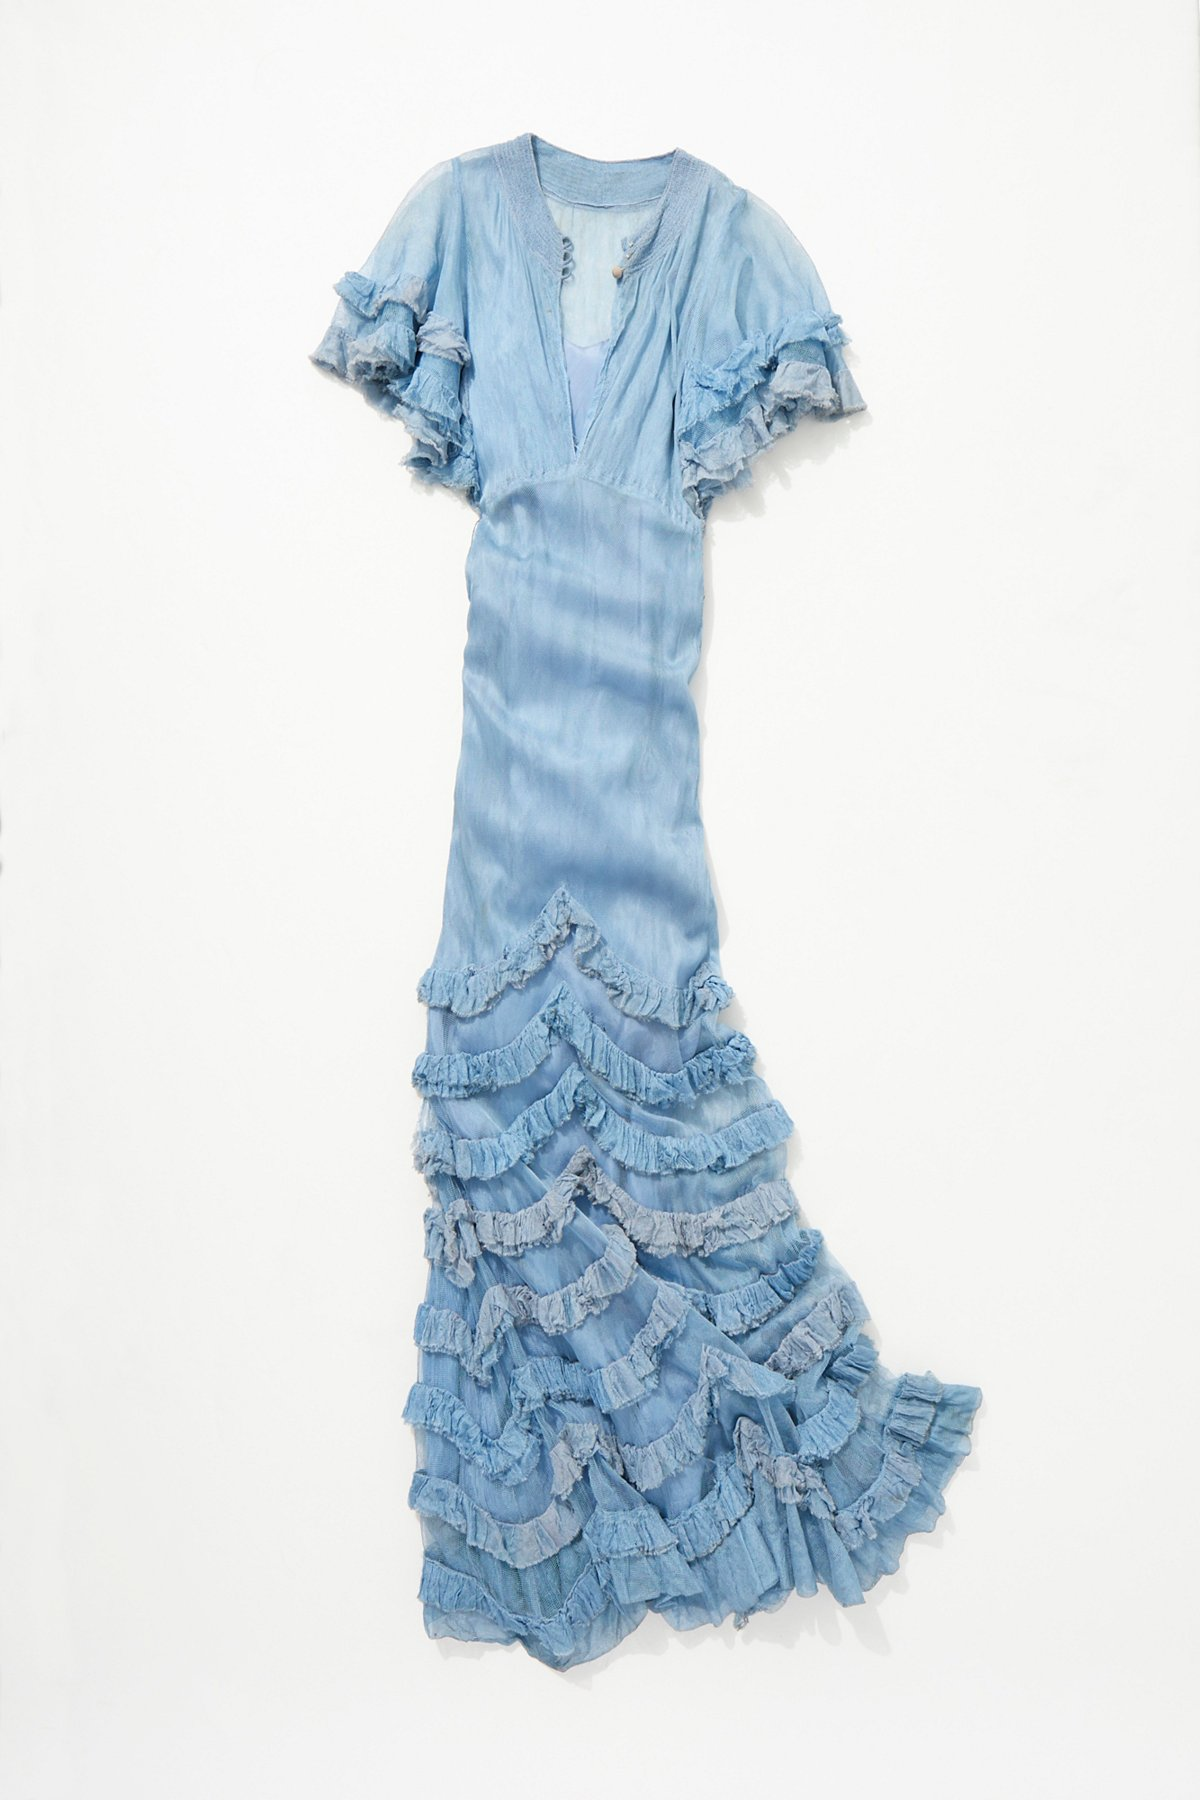 Vintage 1930s Ruffle Net Dress